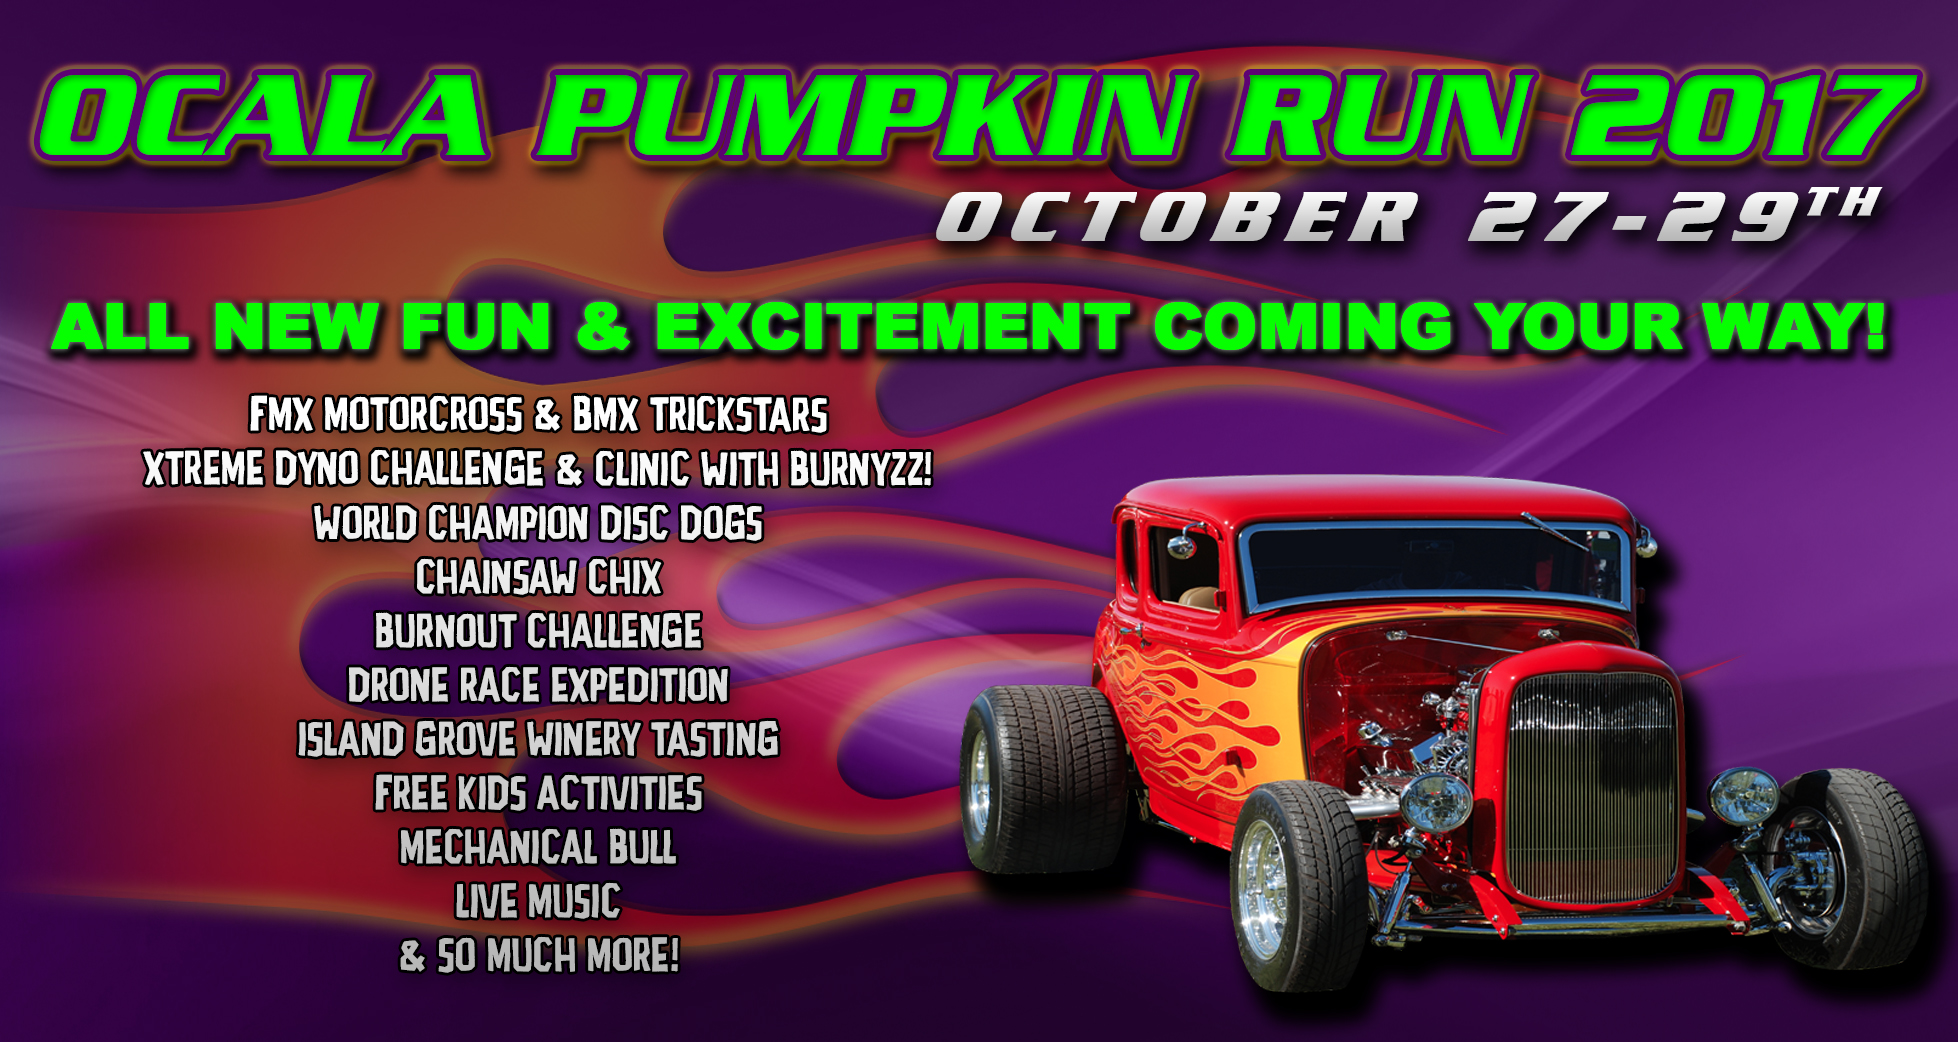 OCALA PUMPKIN RUN 2017